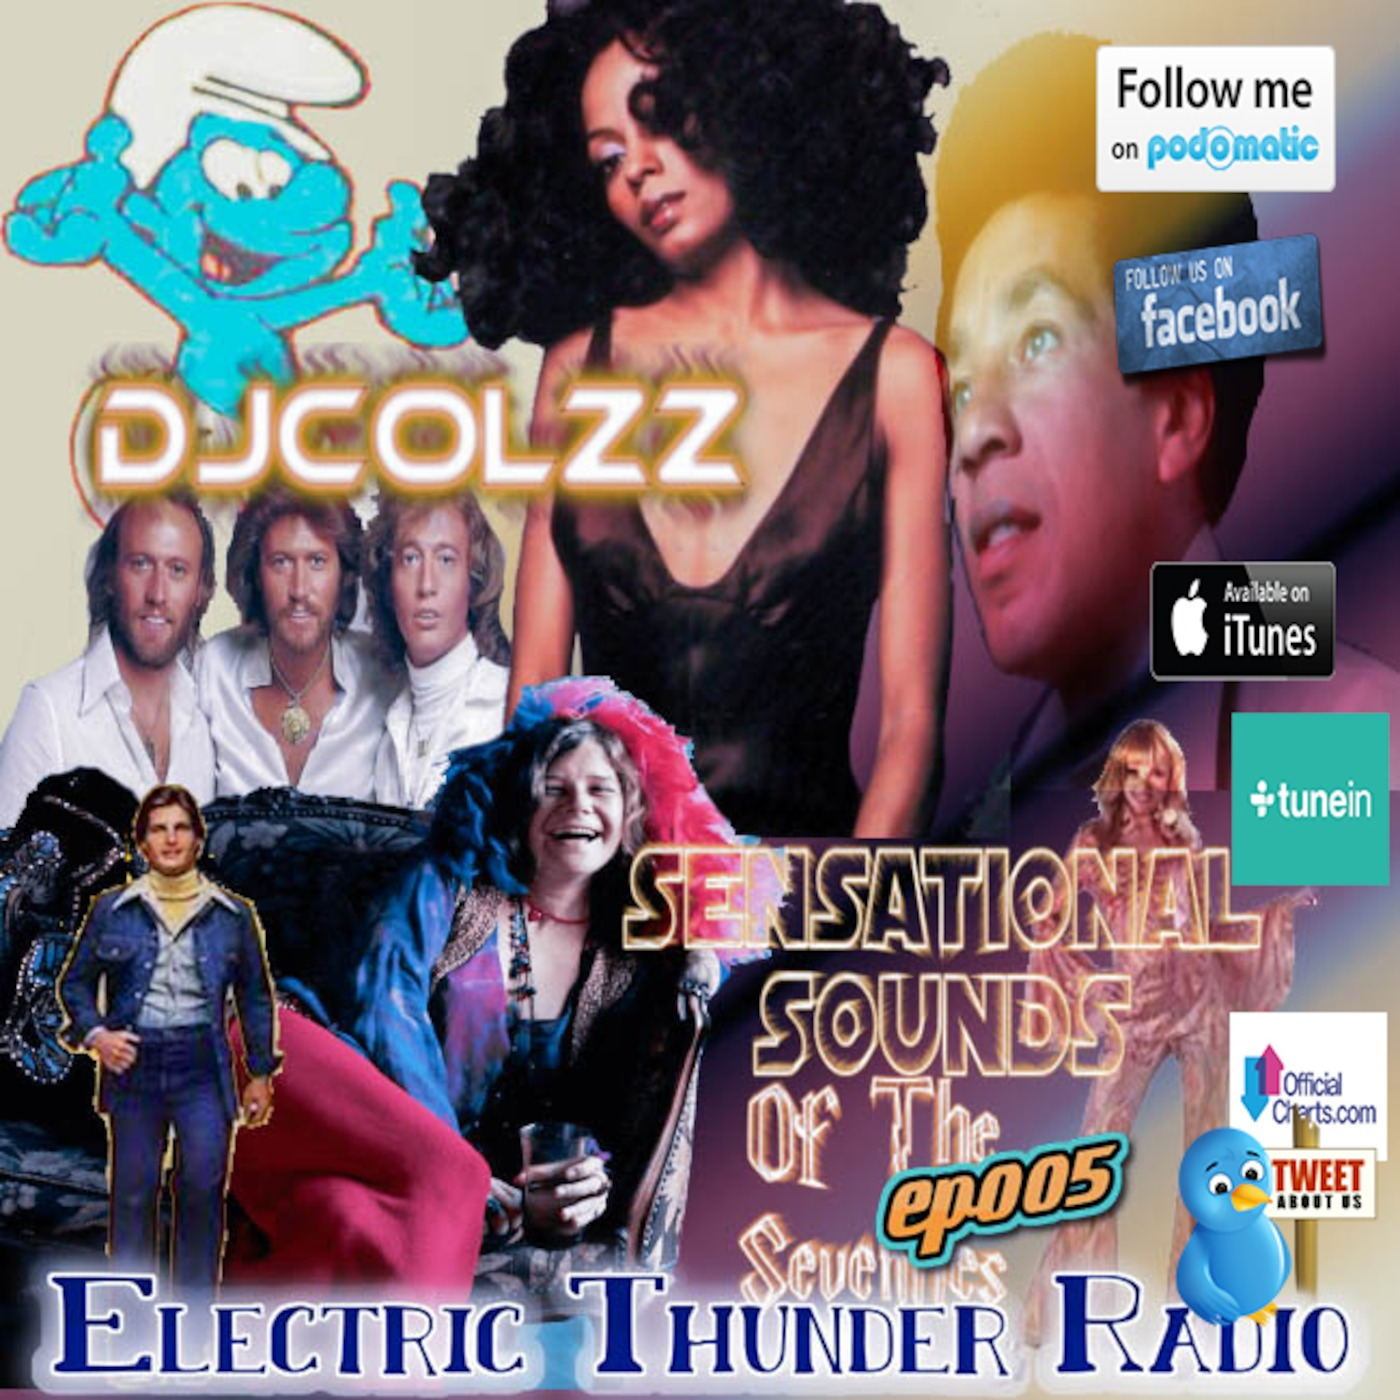 Sensational Sounds Of The 70s Ep005 Electric Thunder Radio podcast